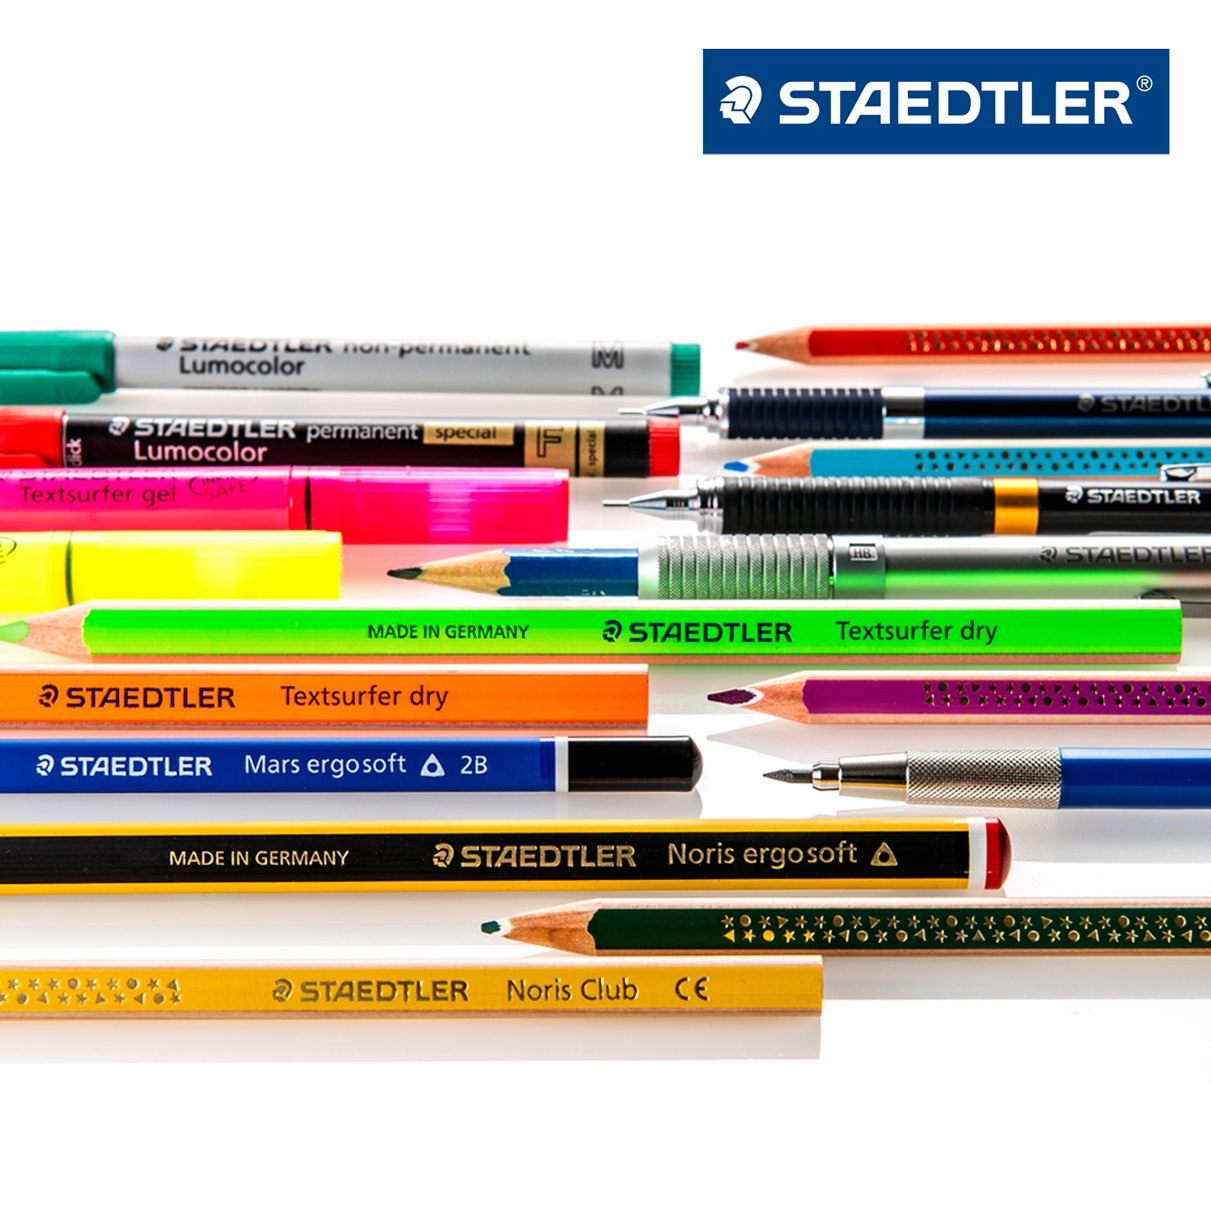 Staedtler Multi Function Avant Grade Cool Silver, Red Ink Ballpoint Pen Plus 0.5mm Mechanical Pencil (927AG-S) by Staedtler (Image #7)